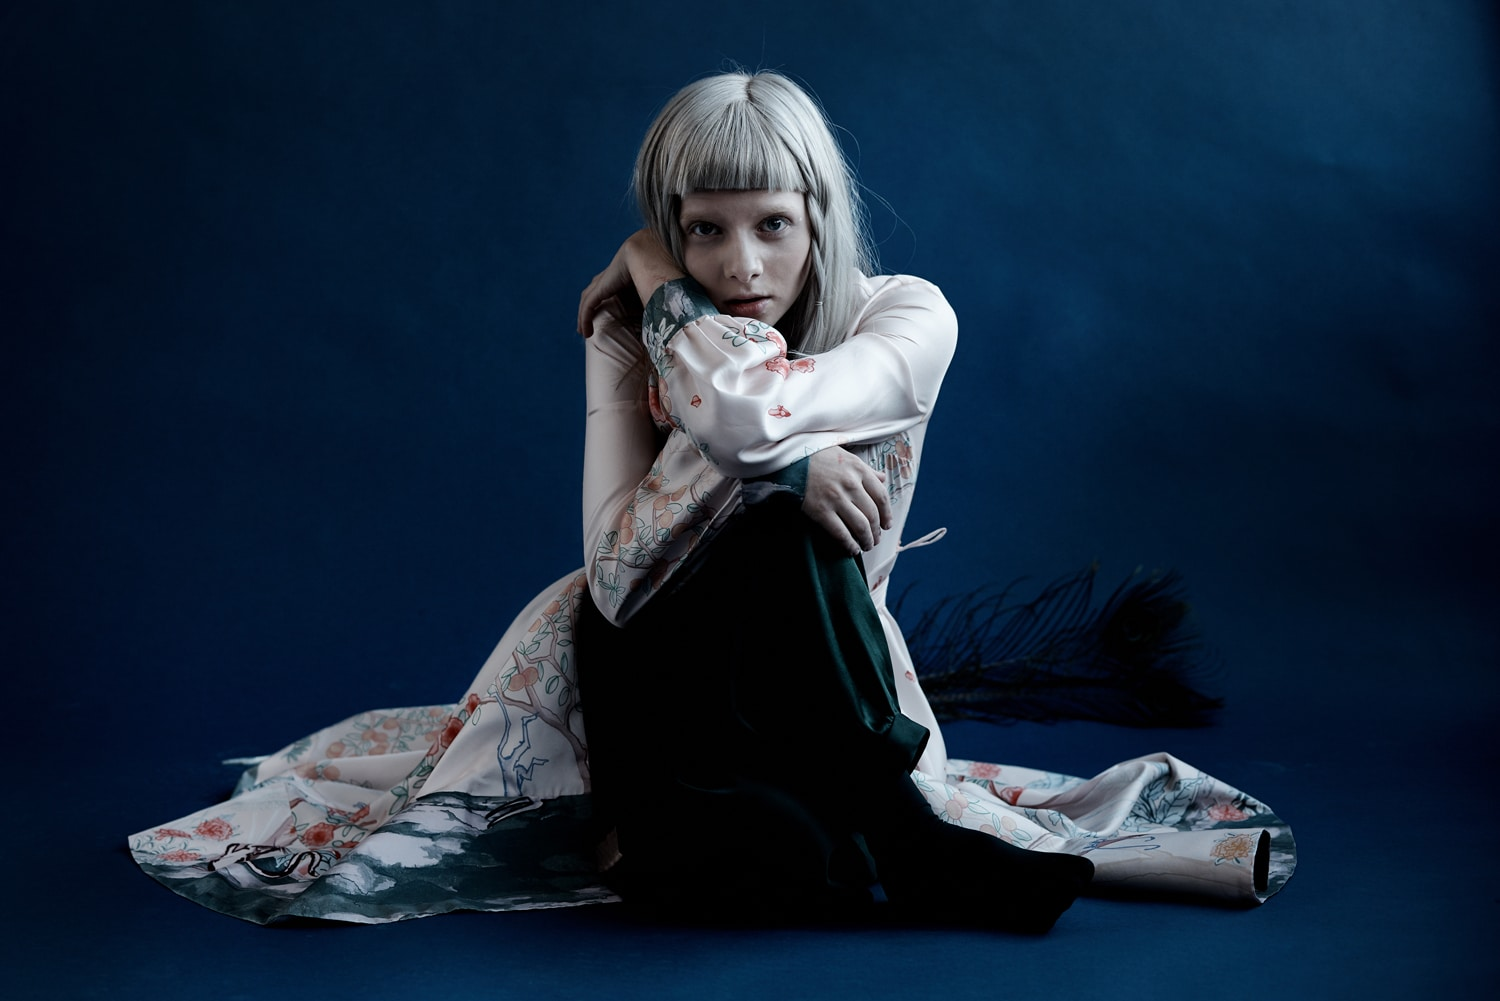 Artist Aurora pictured wearing a long white jacket with black trousers and sitting in a huddled position